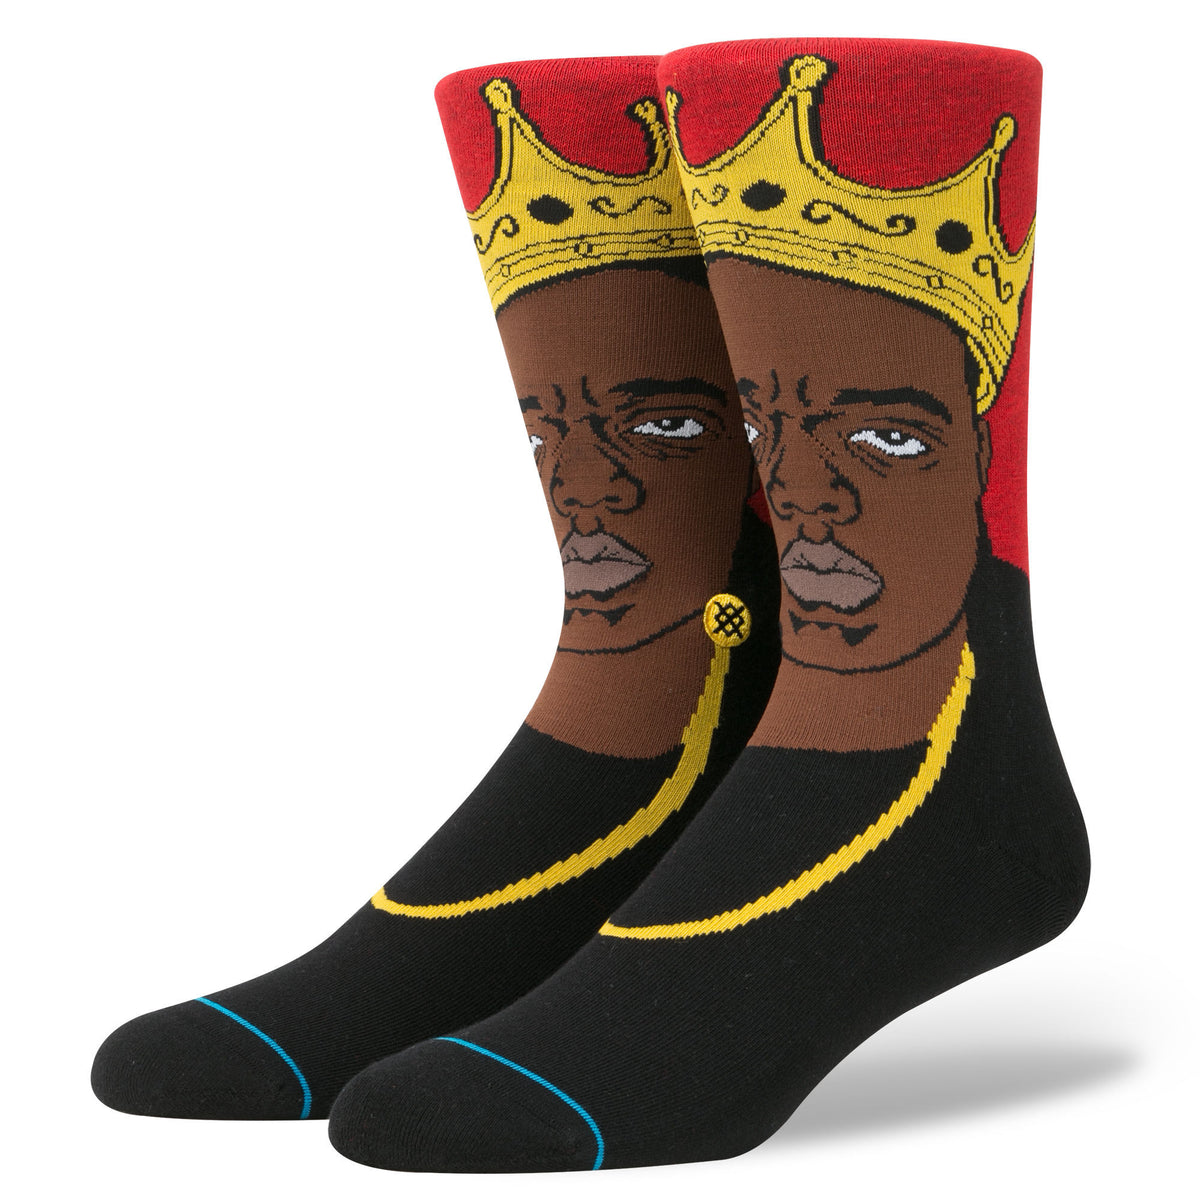 Stance: Notorious B.I.G. Sock Pack